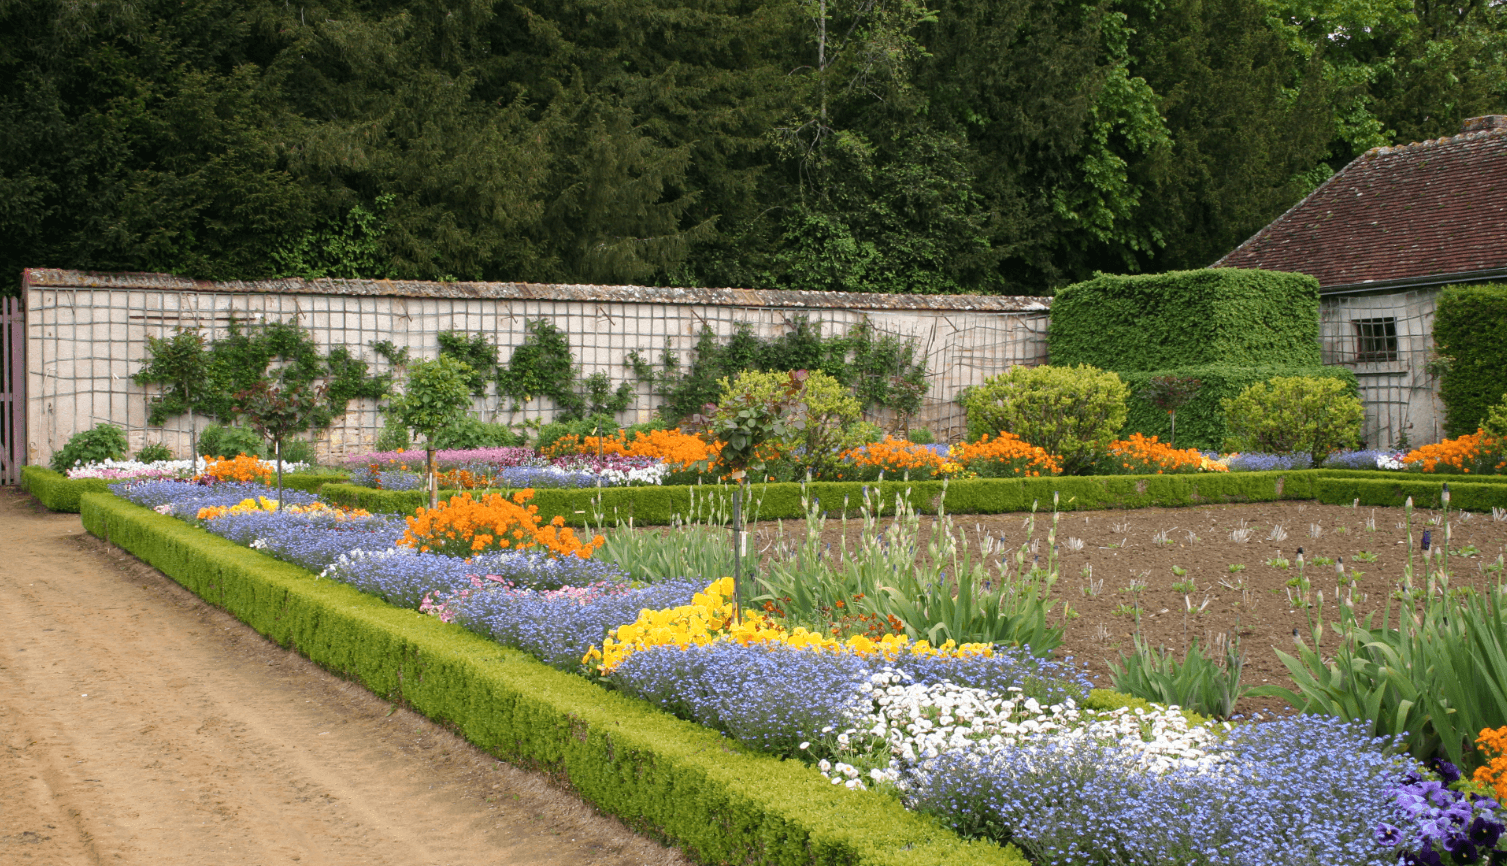 bordure-vegetale-jardin